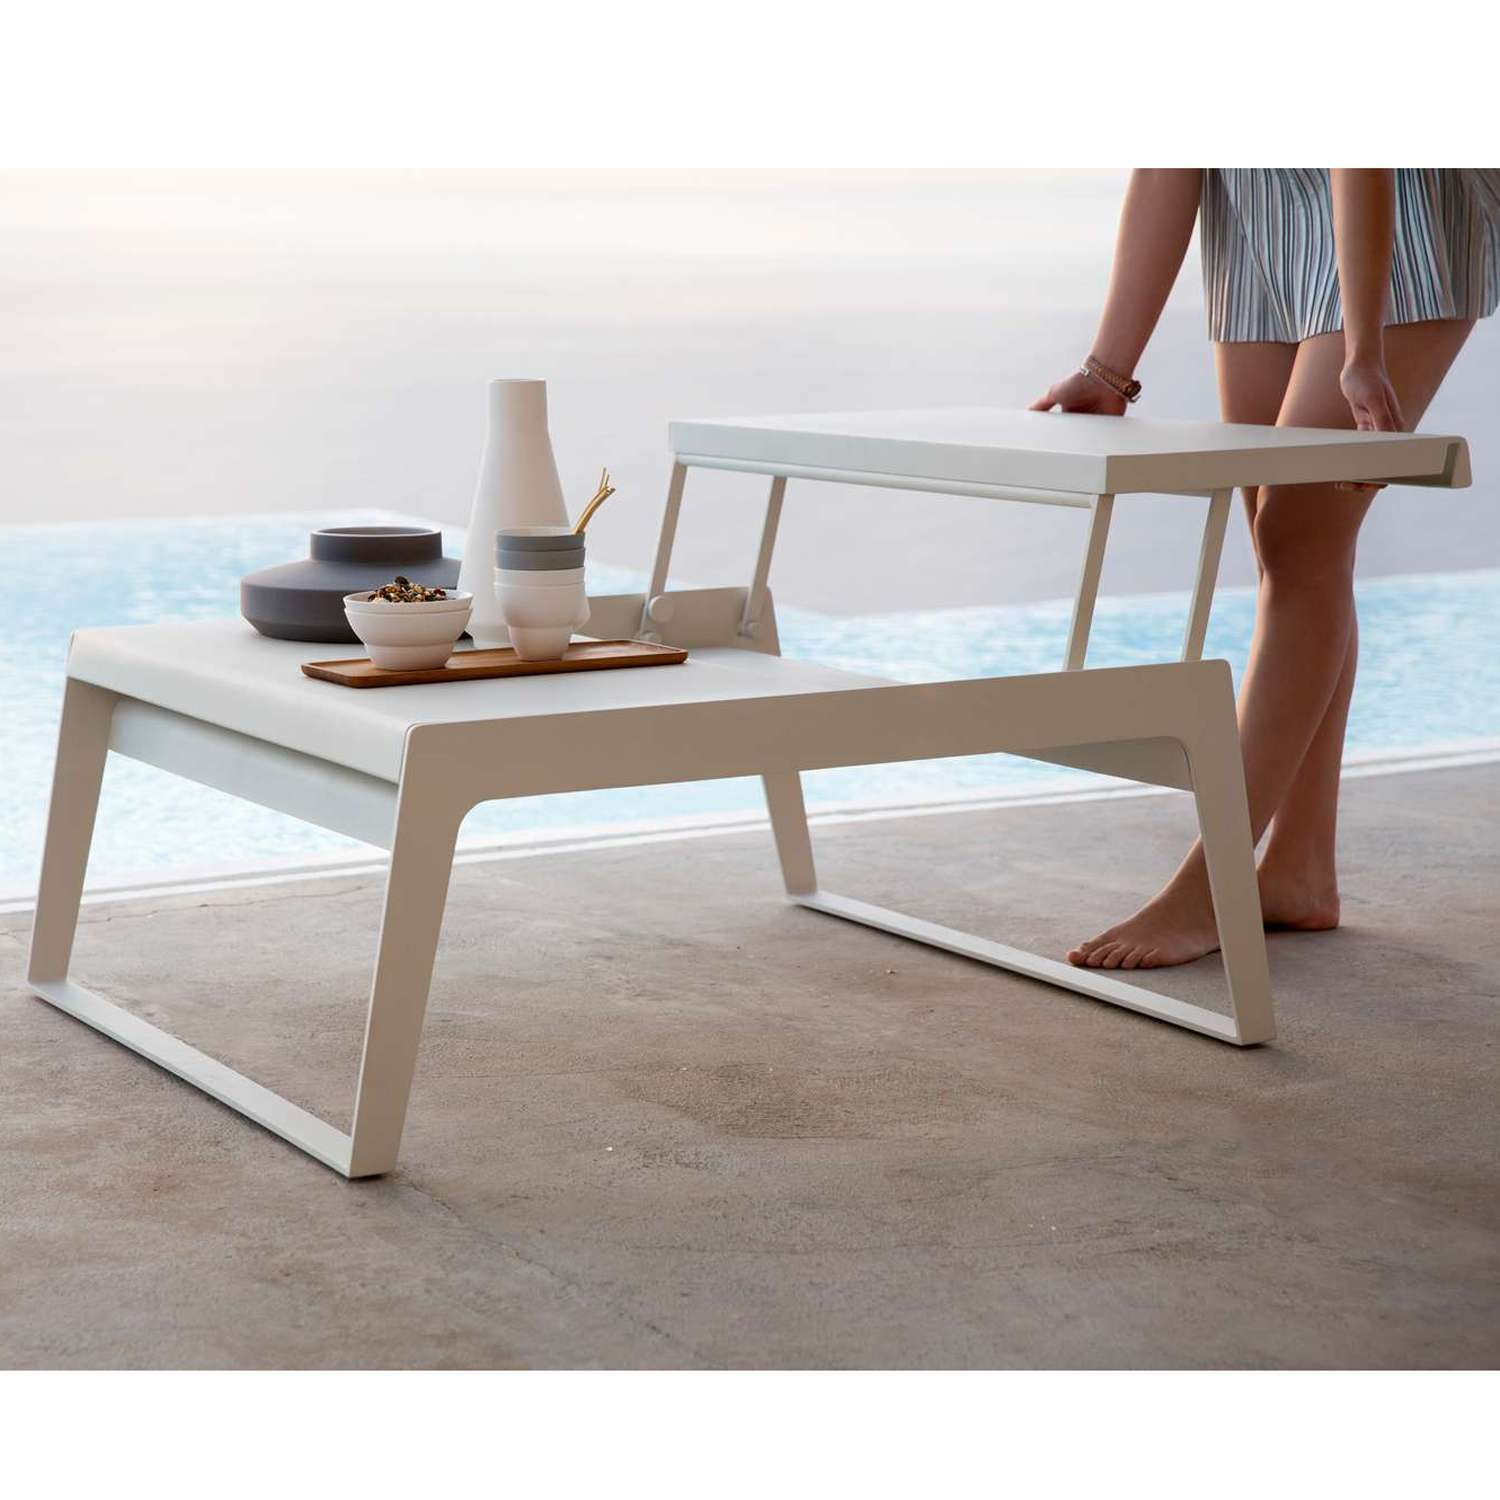 Both Sleek And Practical, The Chill Out Dual Height Coffee Table Is One  Modern Outdoor